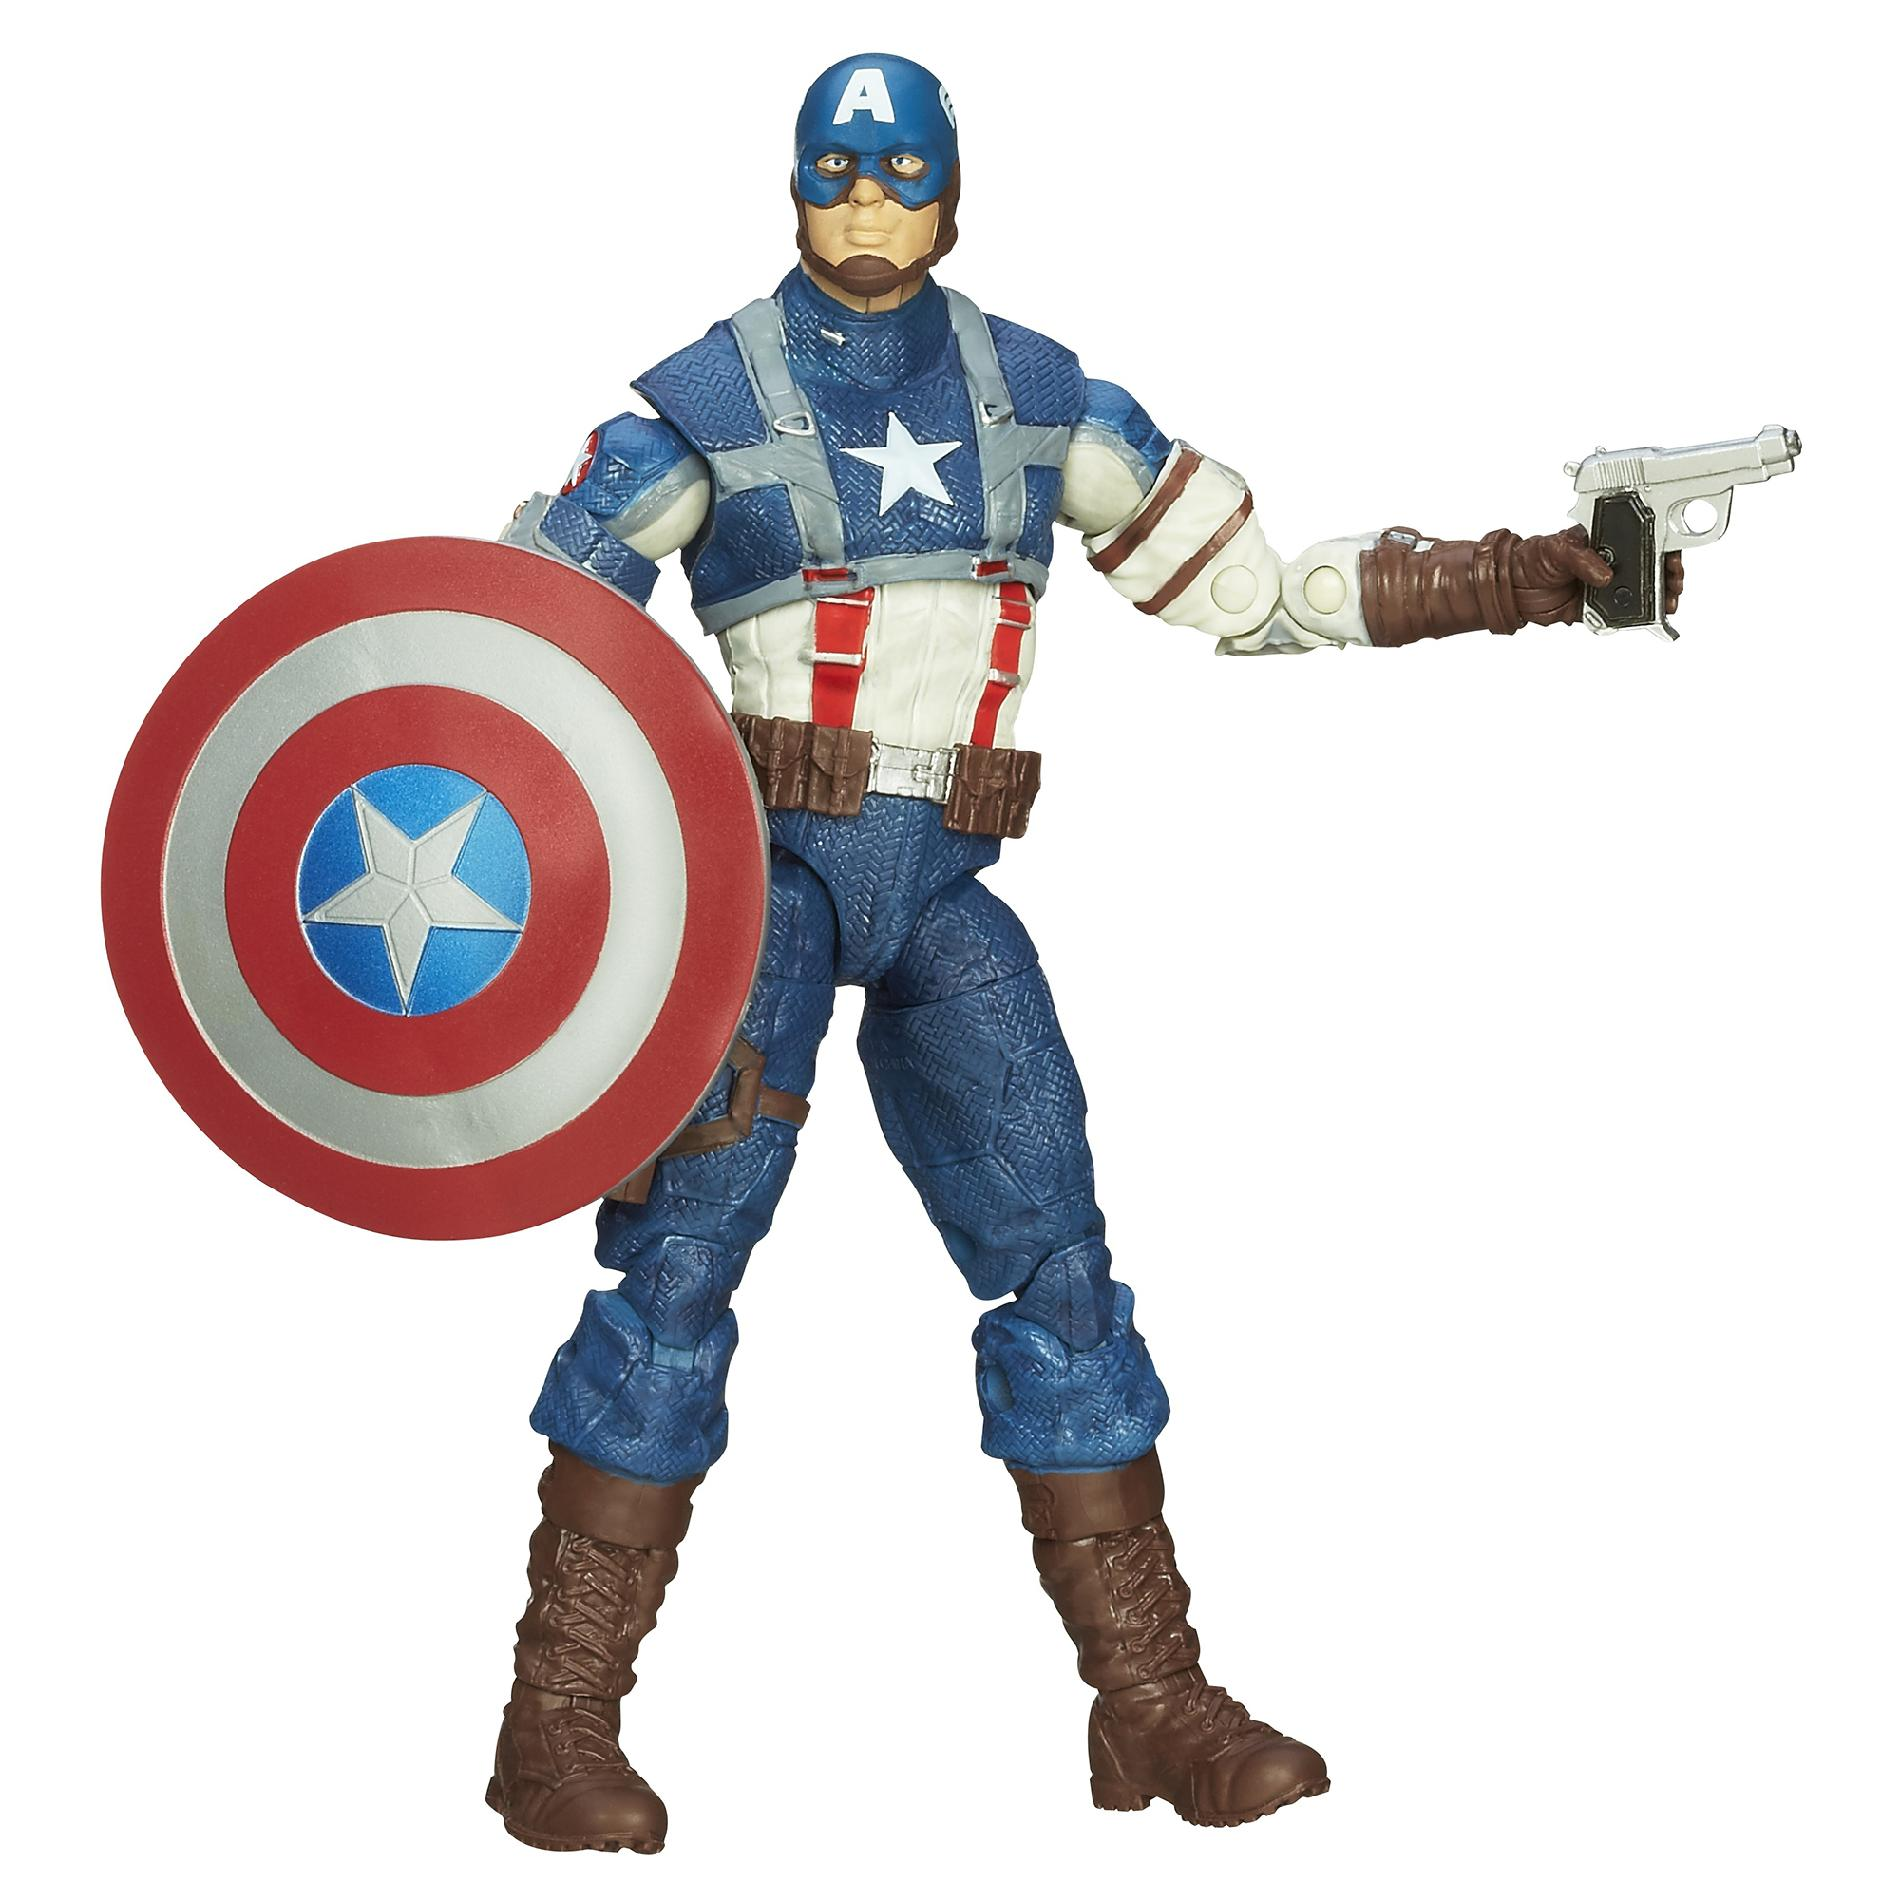 more captain america toy pics the toyark news. Black Bedroom Furniture Sets. Home Design Ideas